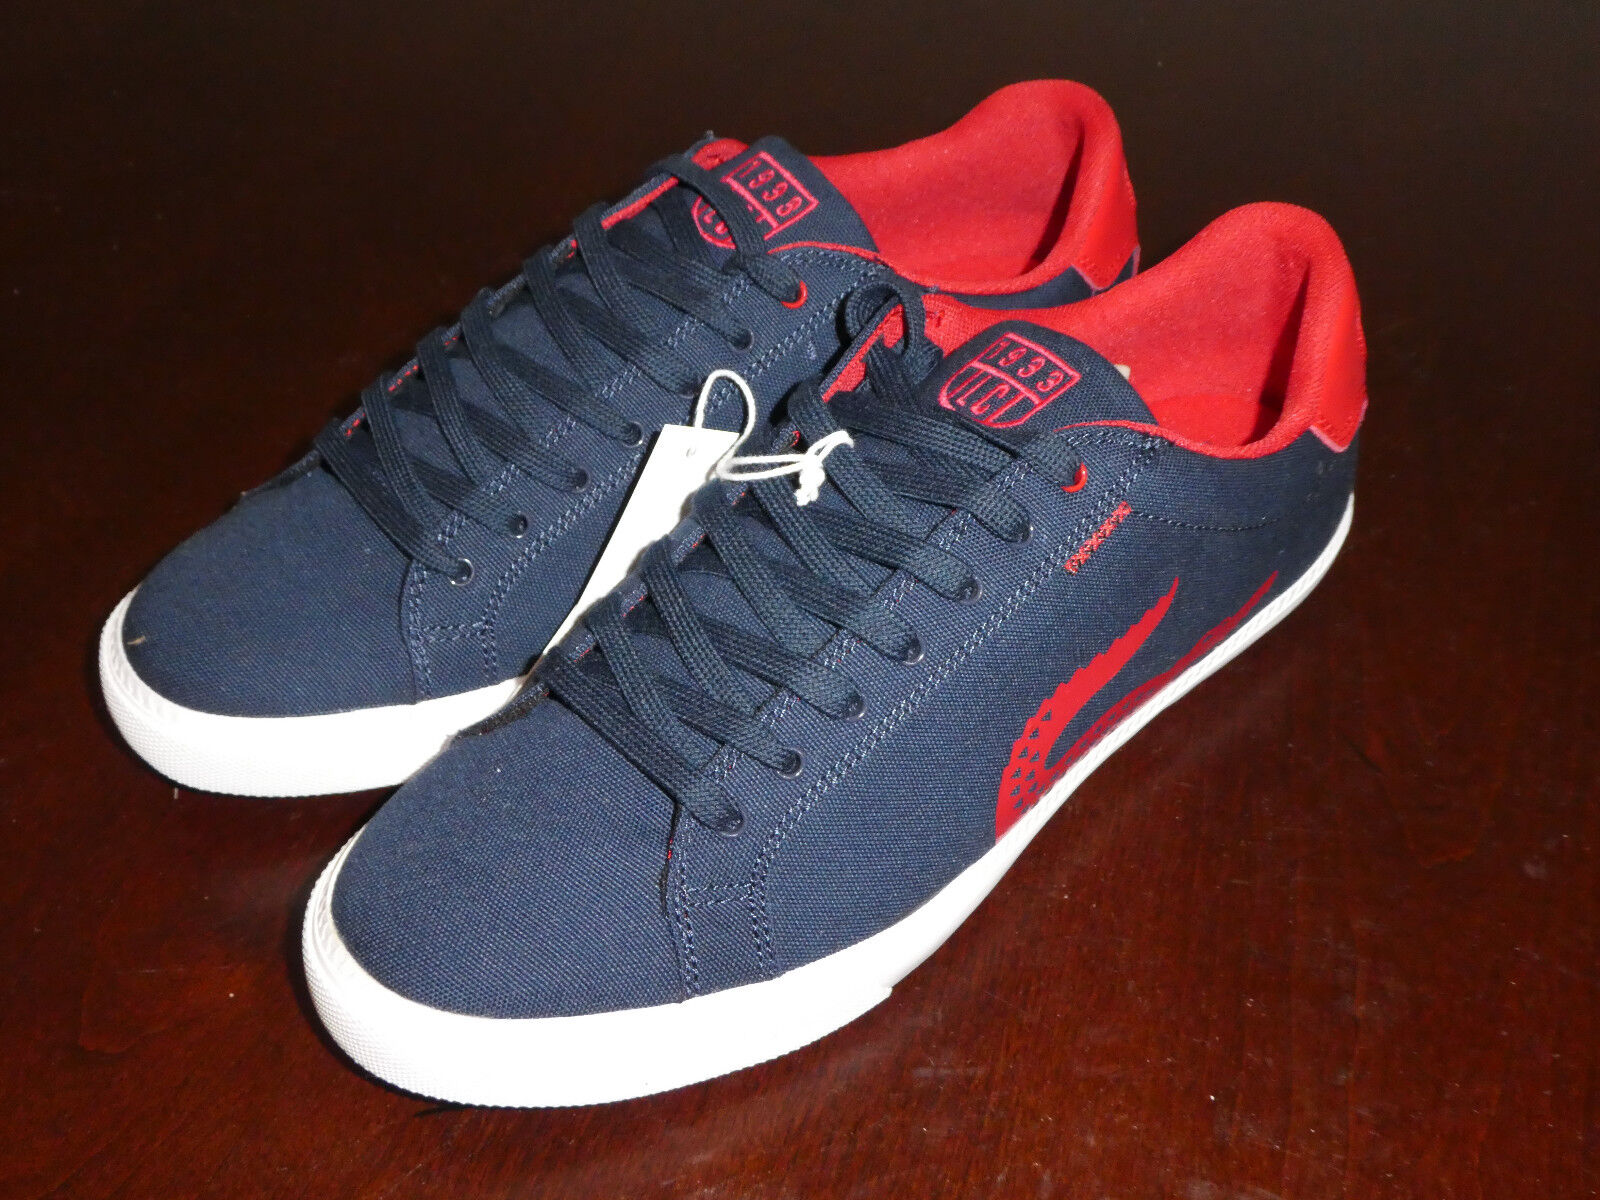 Lacoste Grad Grad Grad Vulc TSP US SPM CNV Uomo shoes New in box 7-29SPM00501P4 b1f37f